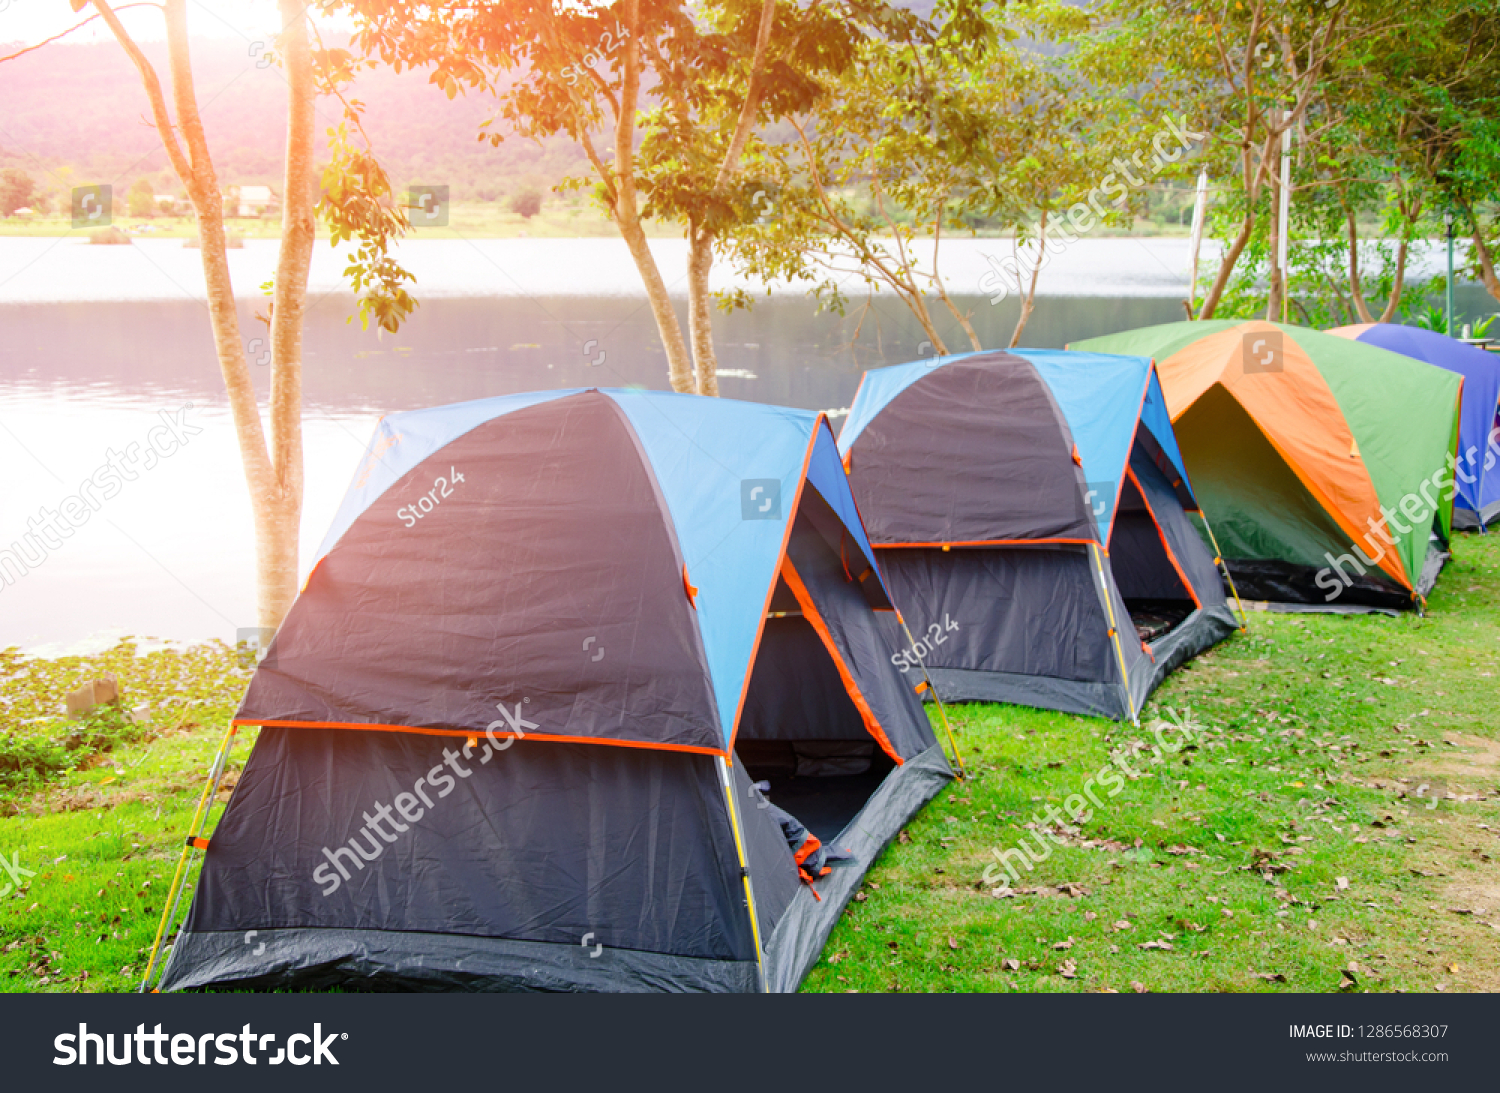 Camping tents in forest near lake side in sunrise with sunlight on the morning.Tourist camp outdoor is the travel to experience close to nature #1286568307